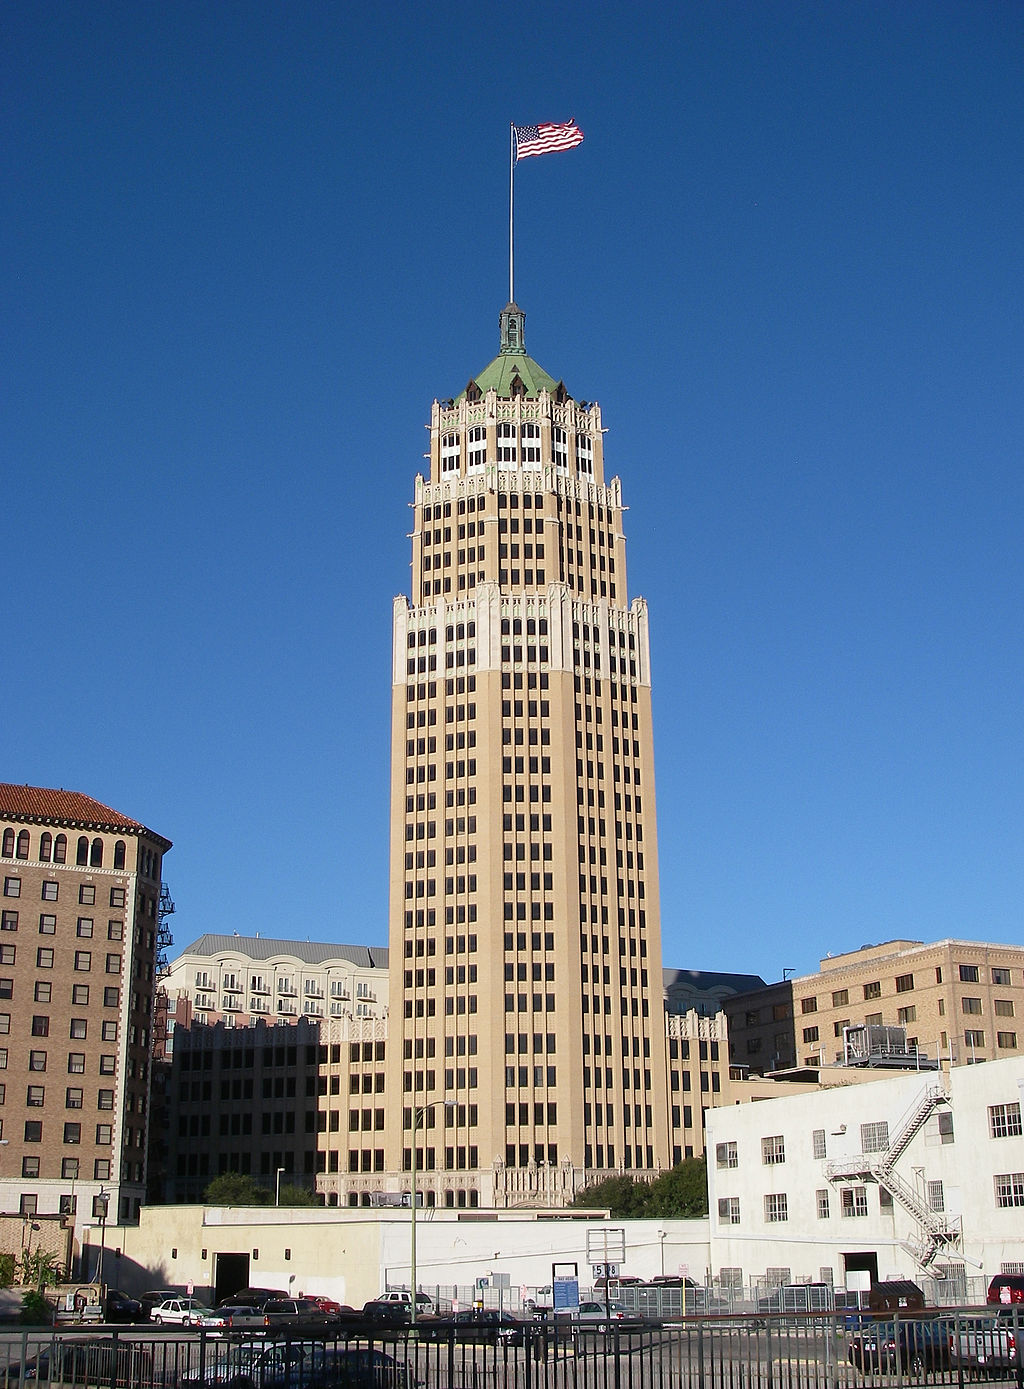 The Tower Life Building was completed in 1929 and is one of the city's most recognizable landmarks.